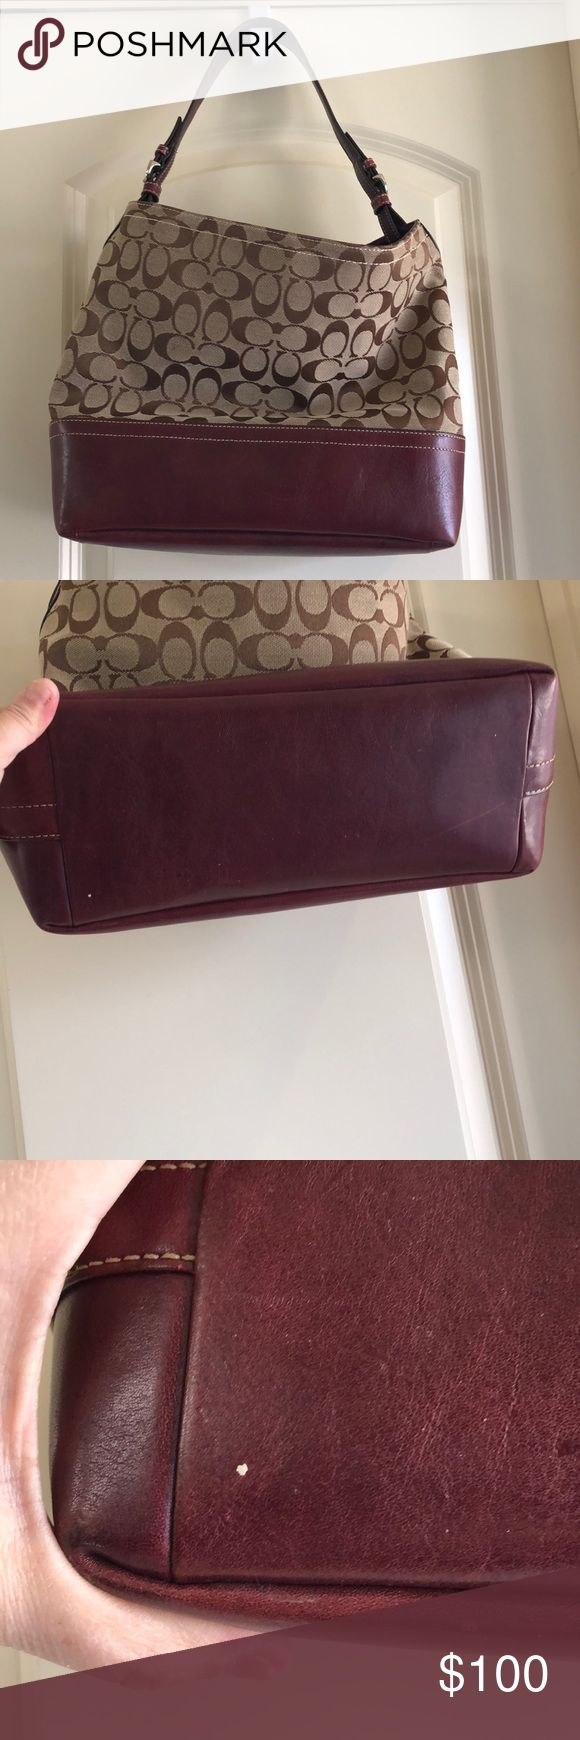 Coach Tote Authentic Coach Tote berry wine color. Guc no stains or tears. Inside and out. One dot on bottom & lightly scratched shown. Silver hardware has no scratches. Taupe signature monogrammed. Reasonable offers will consider. Coach Bags Totes